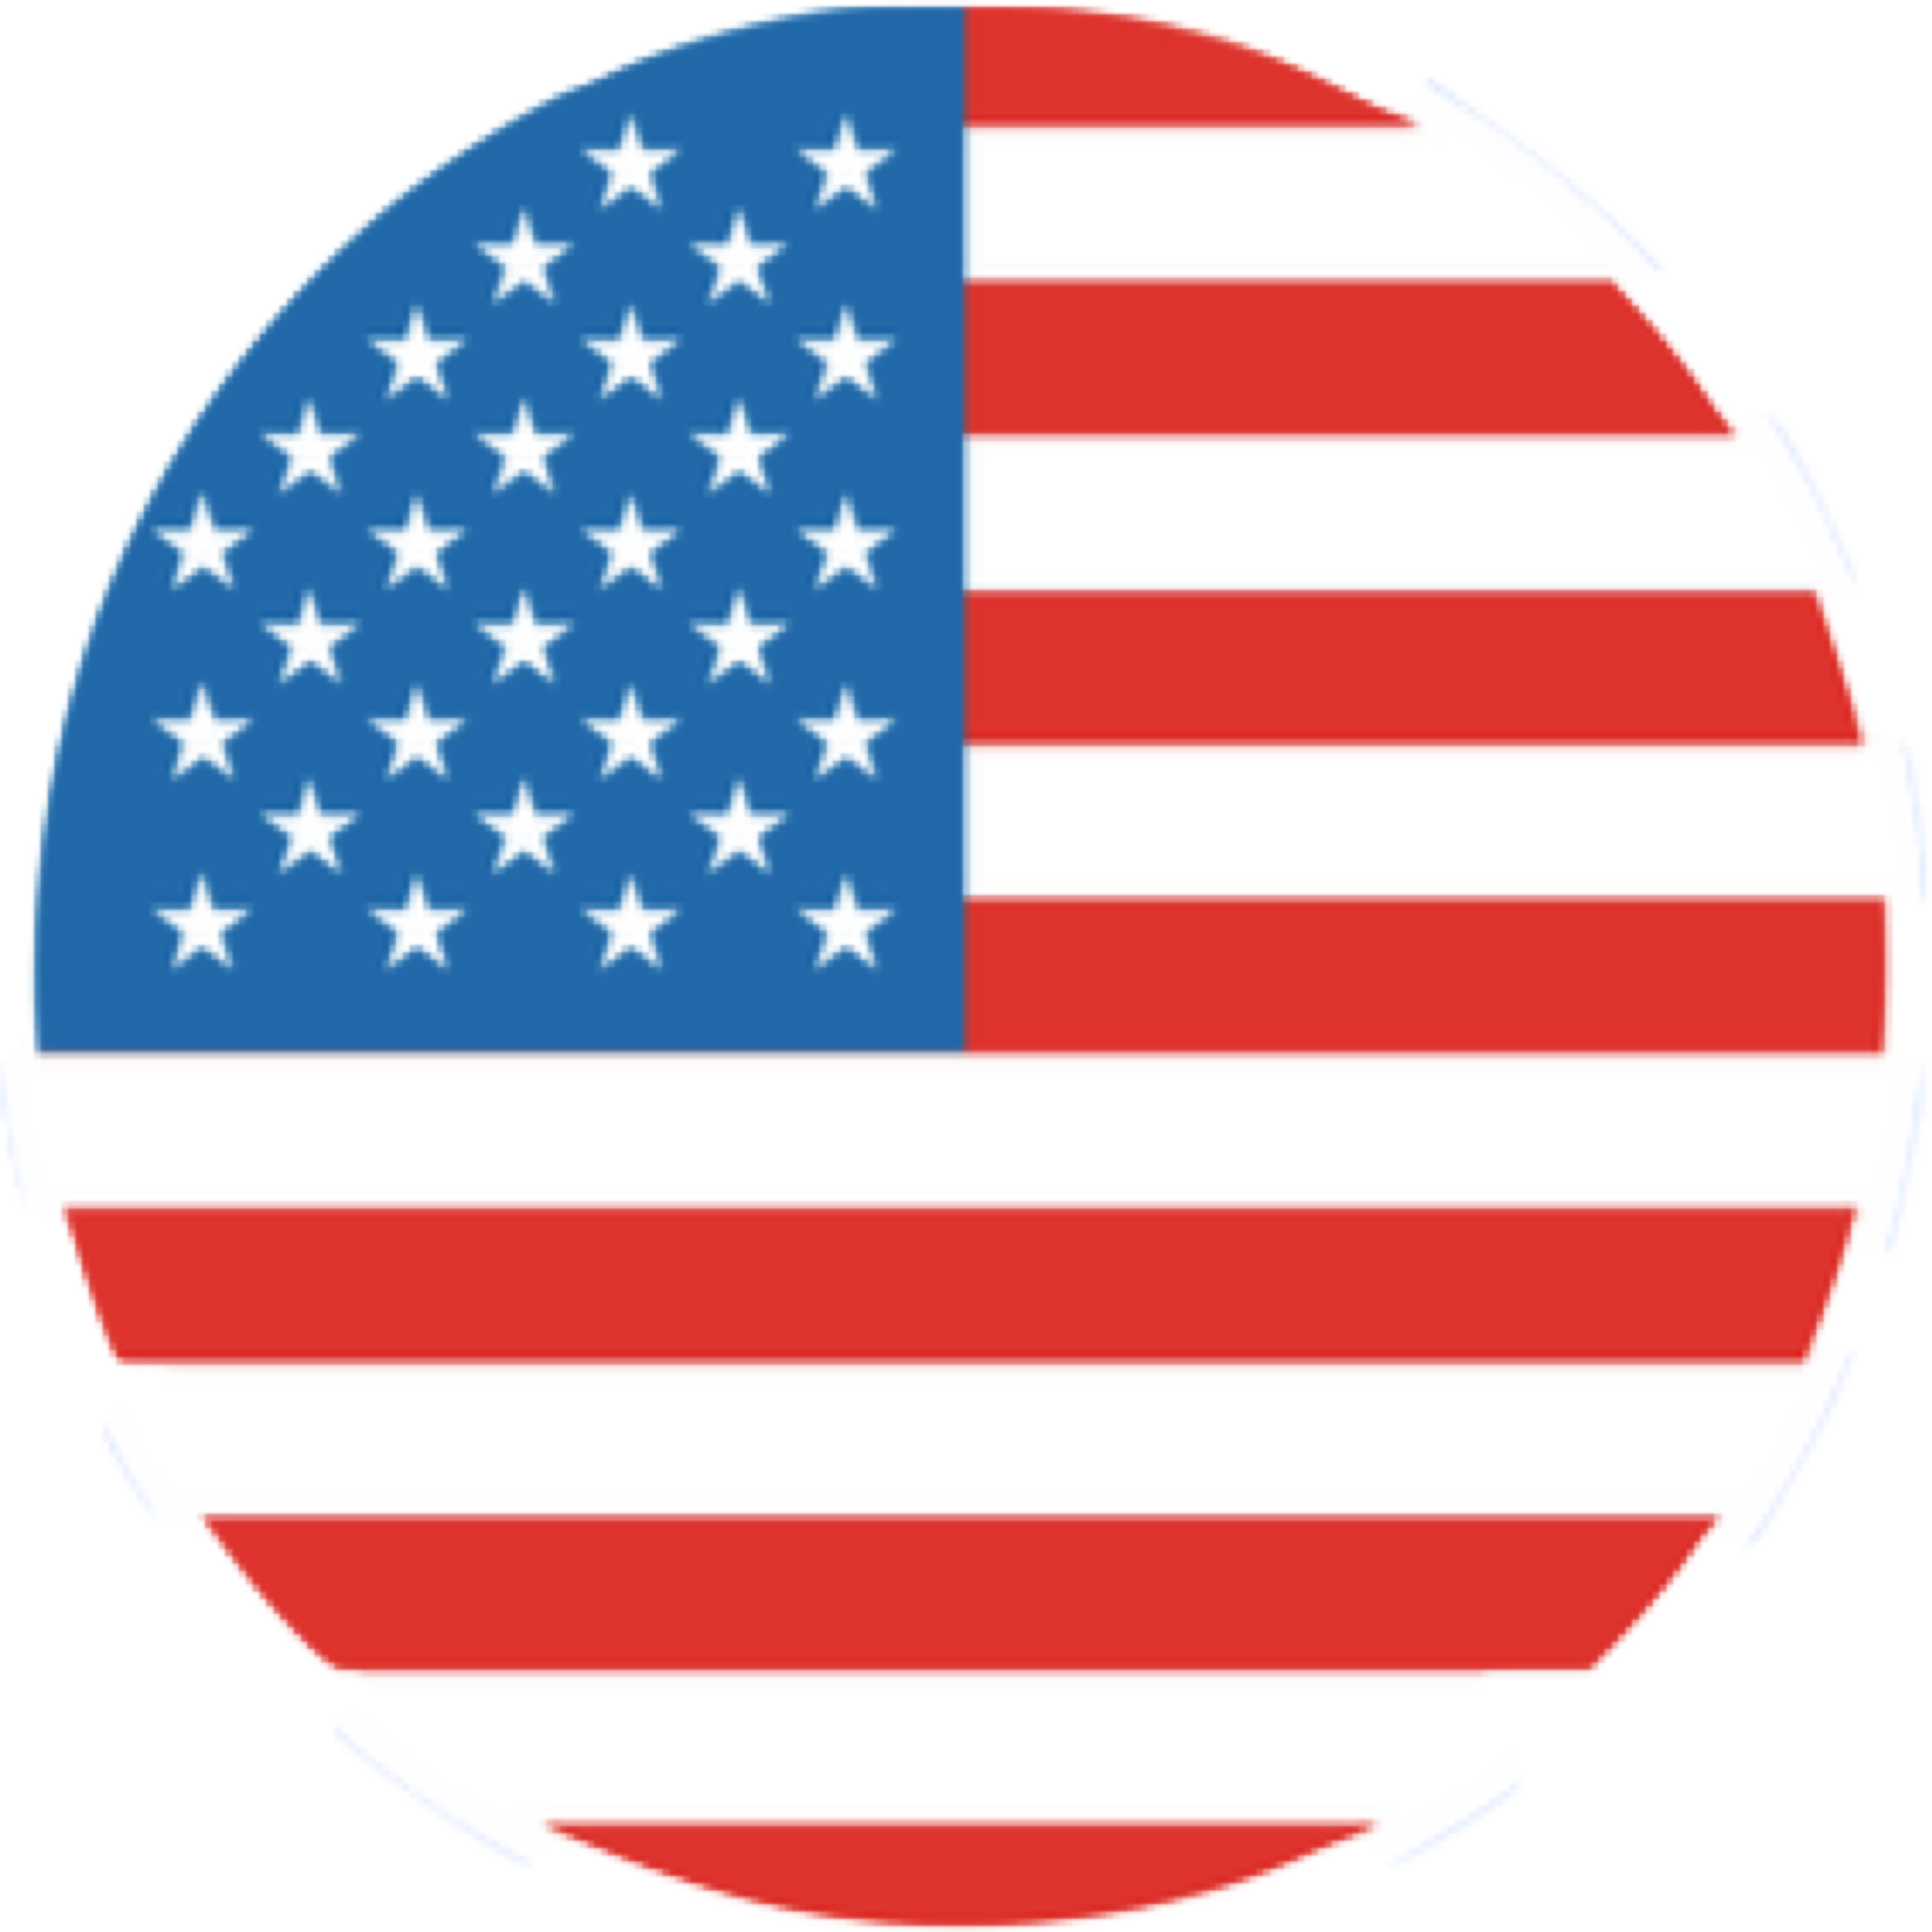 flag button graphic